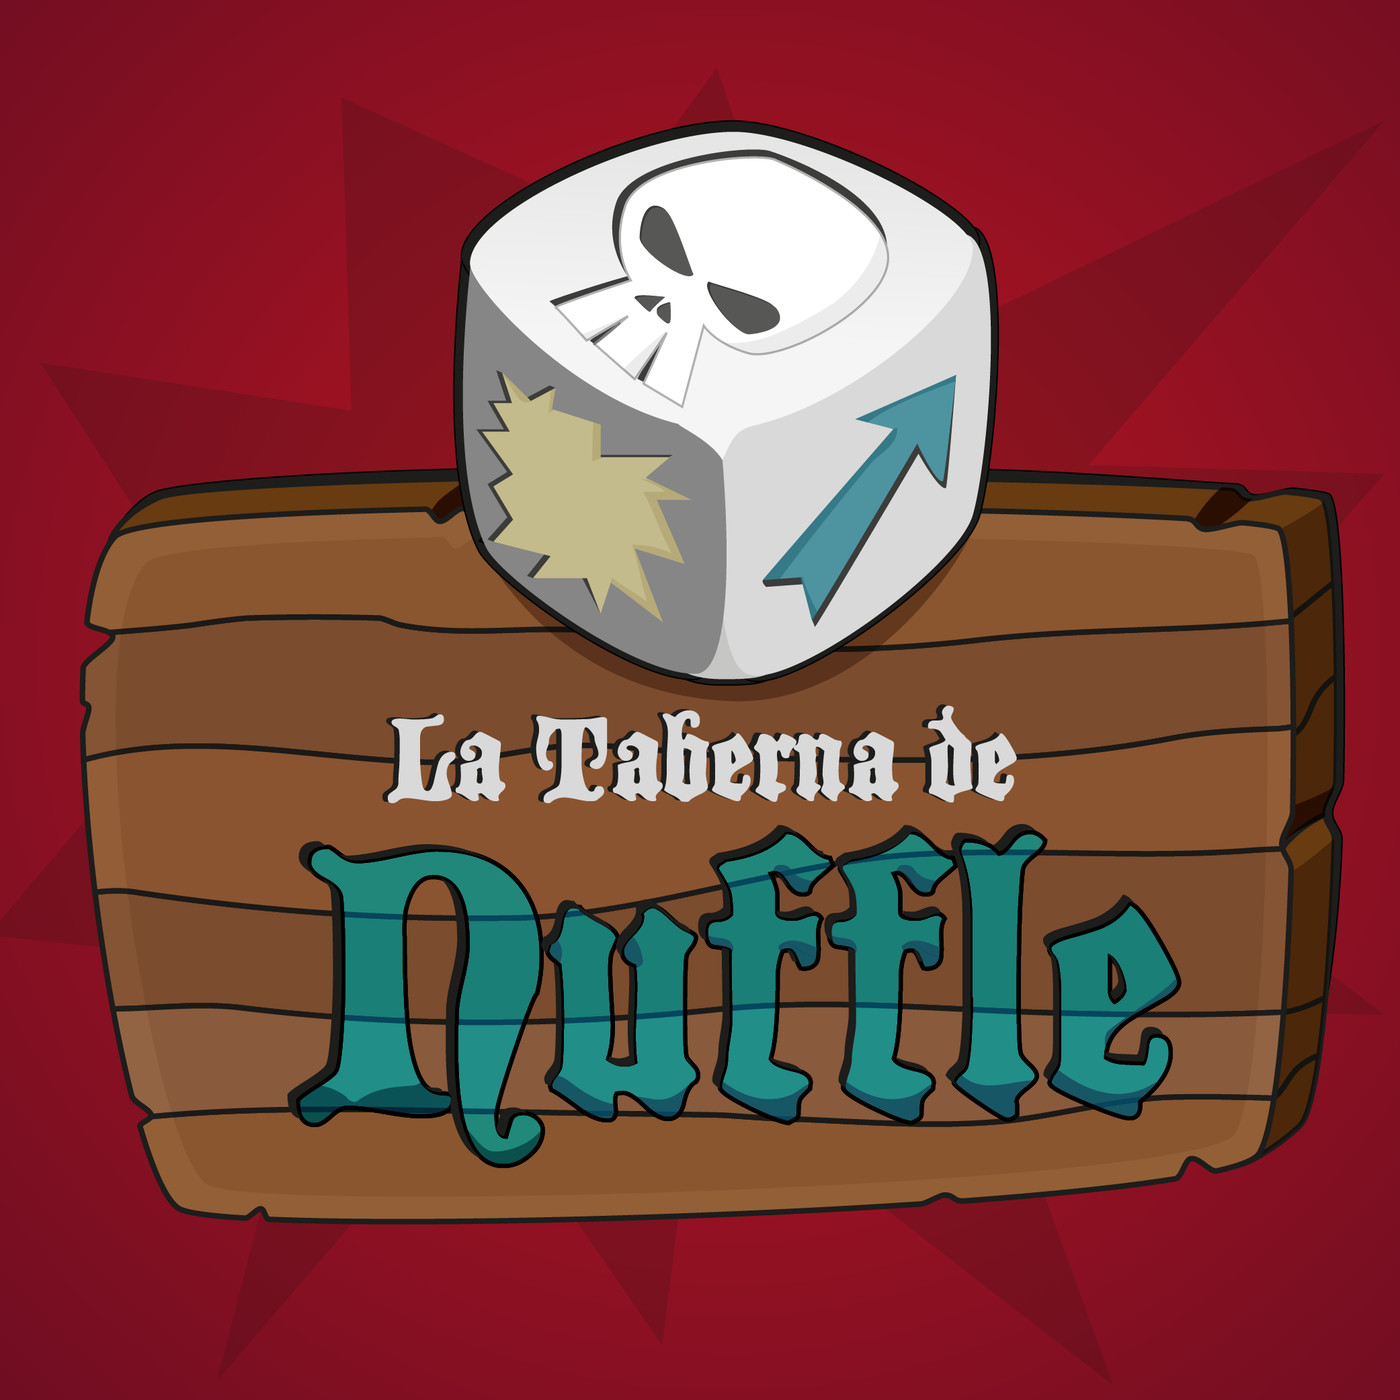 LTdN - 11 - Nuffle se come tu queso